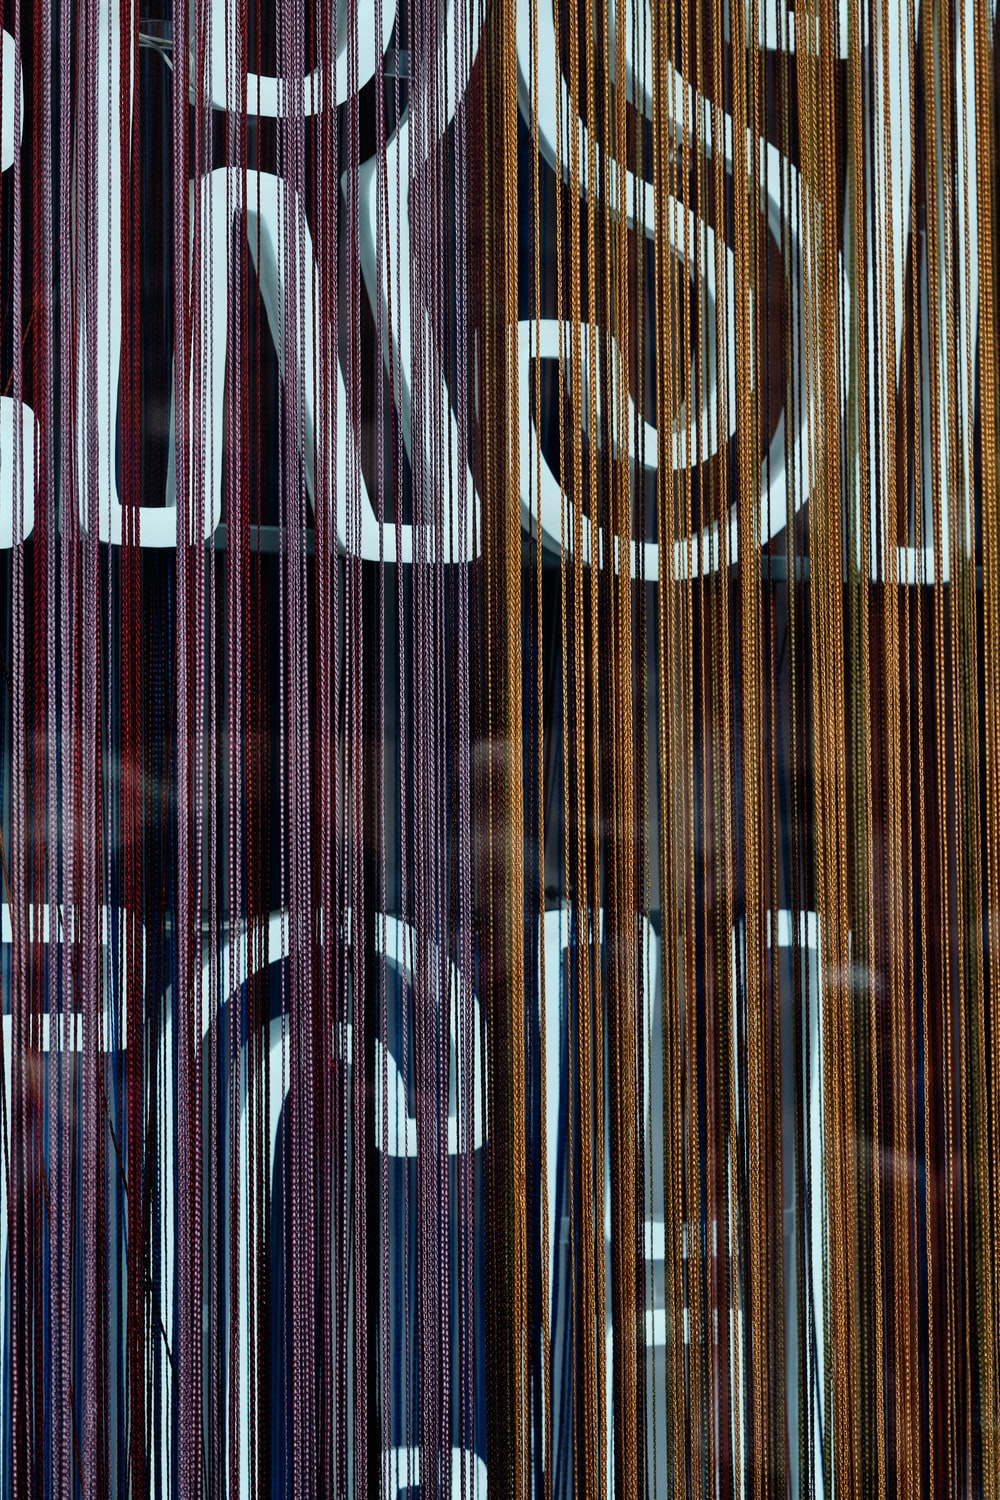 brown and black striped textile